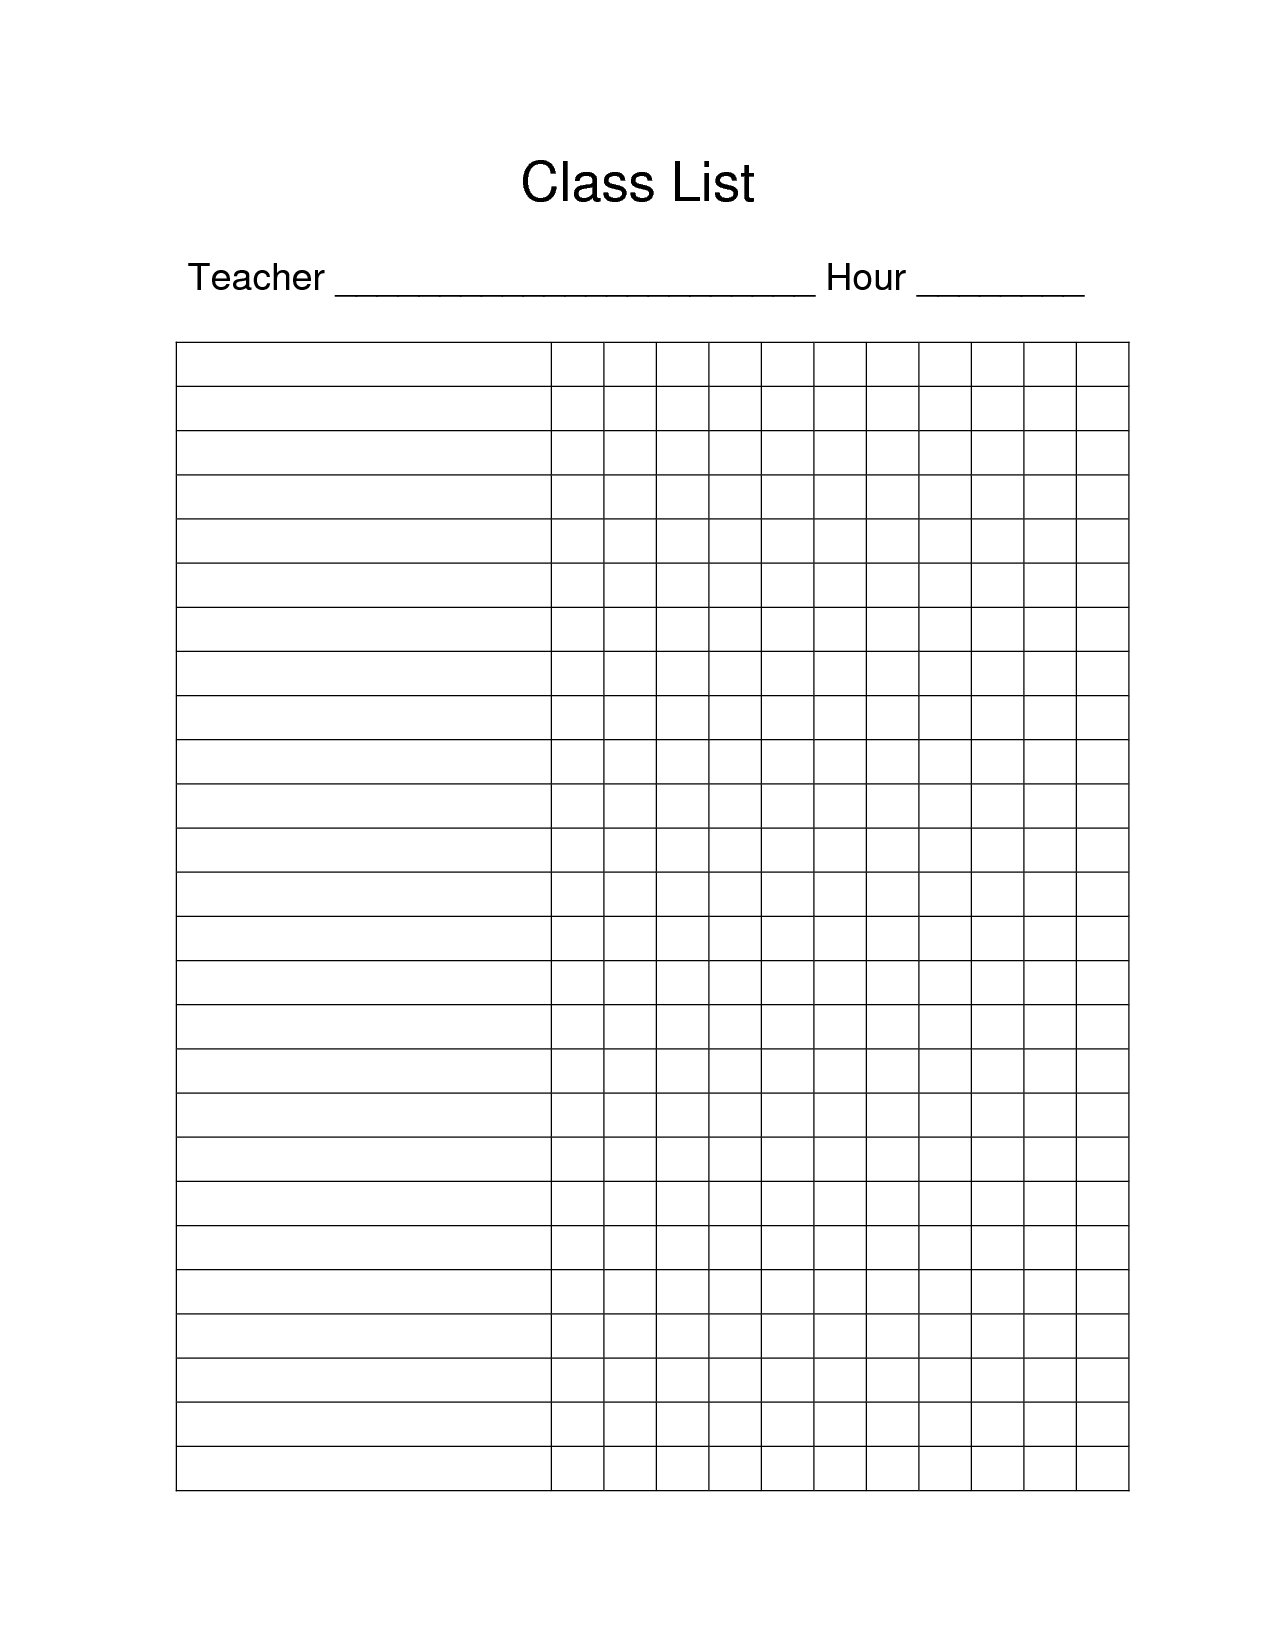 Free Printable Class List Template